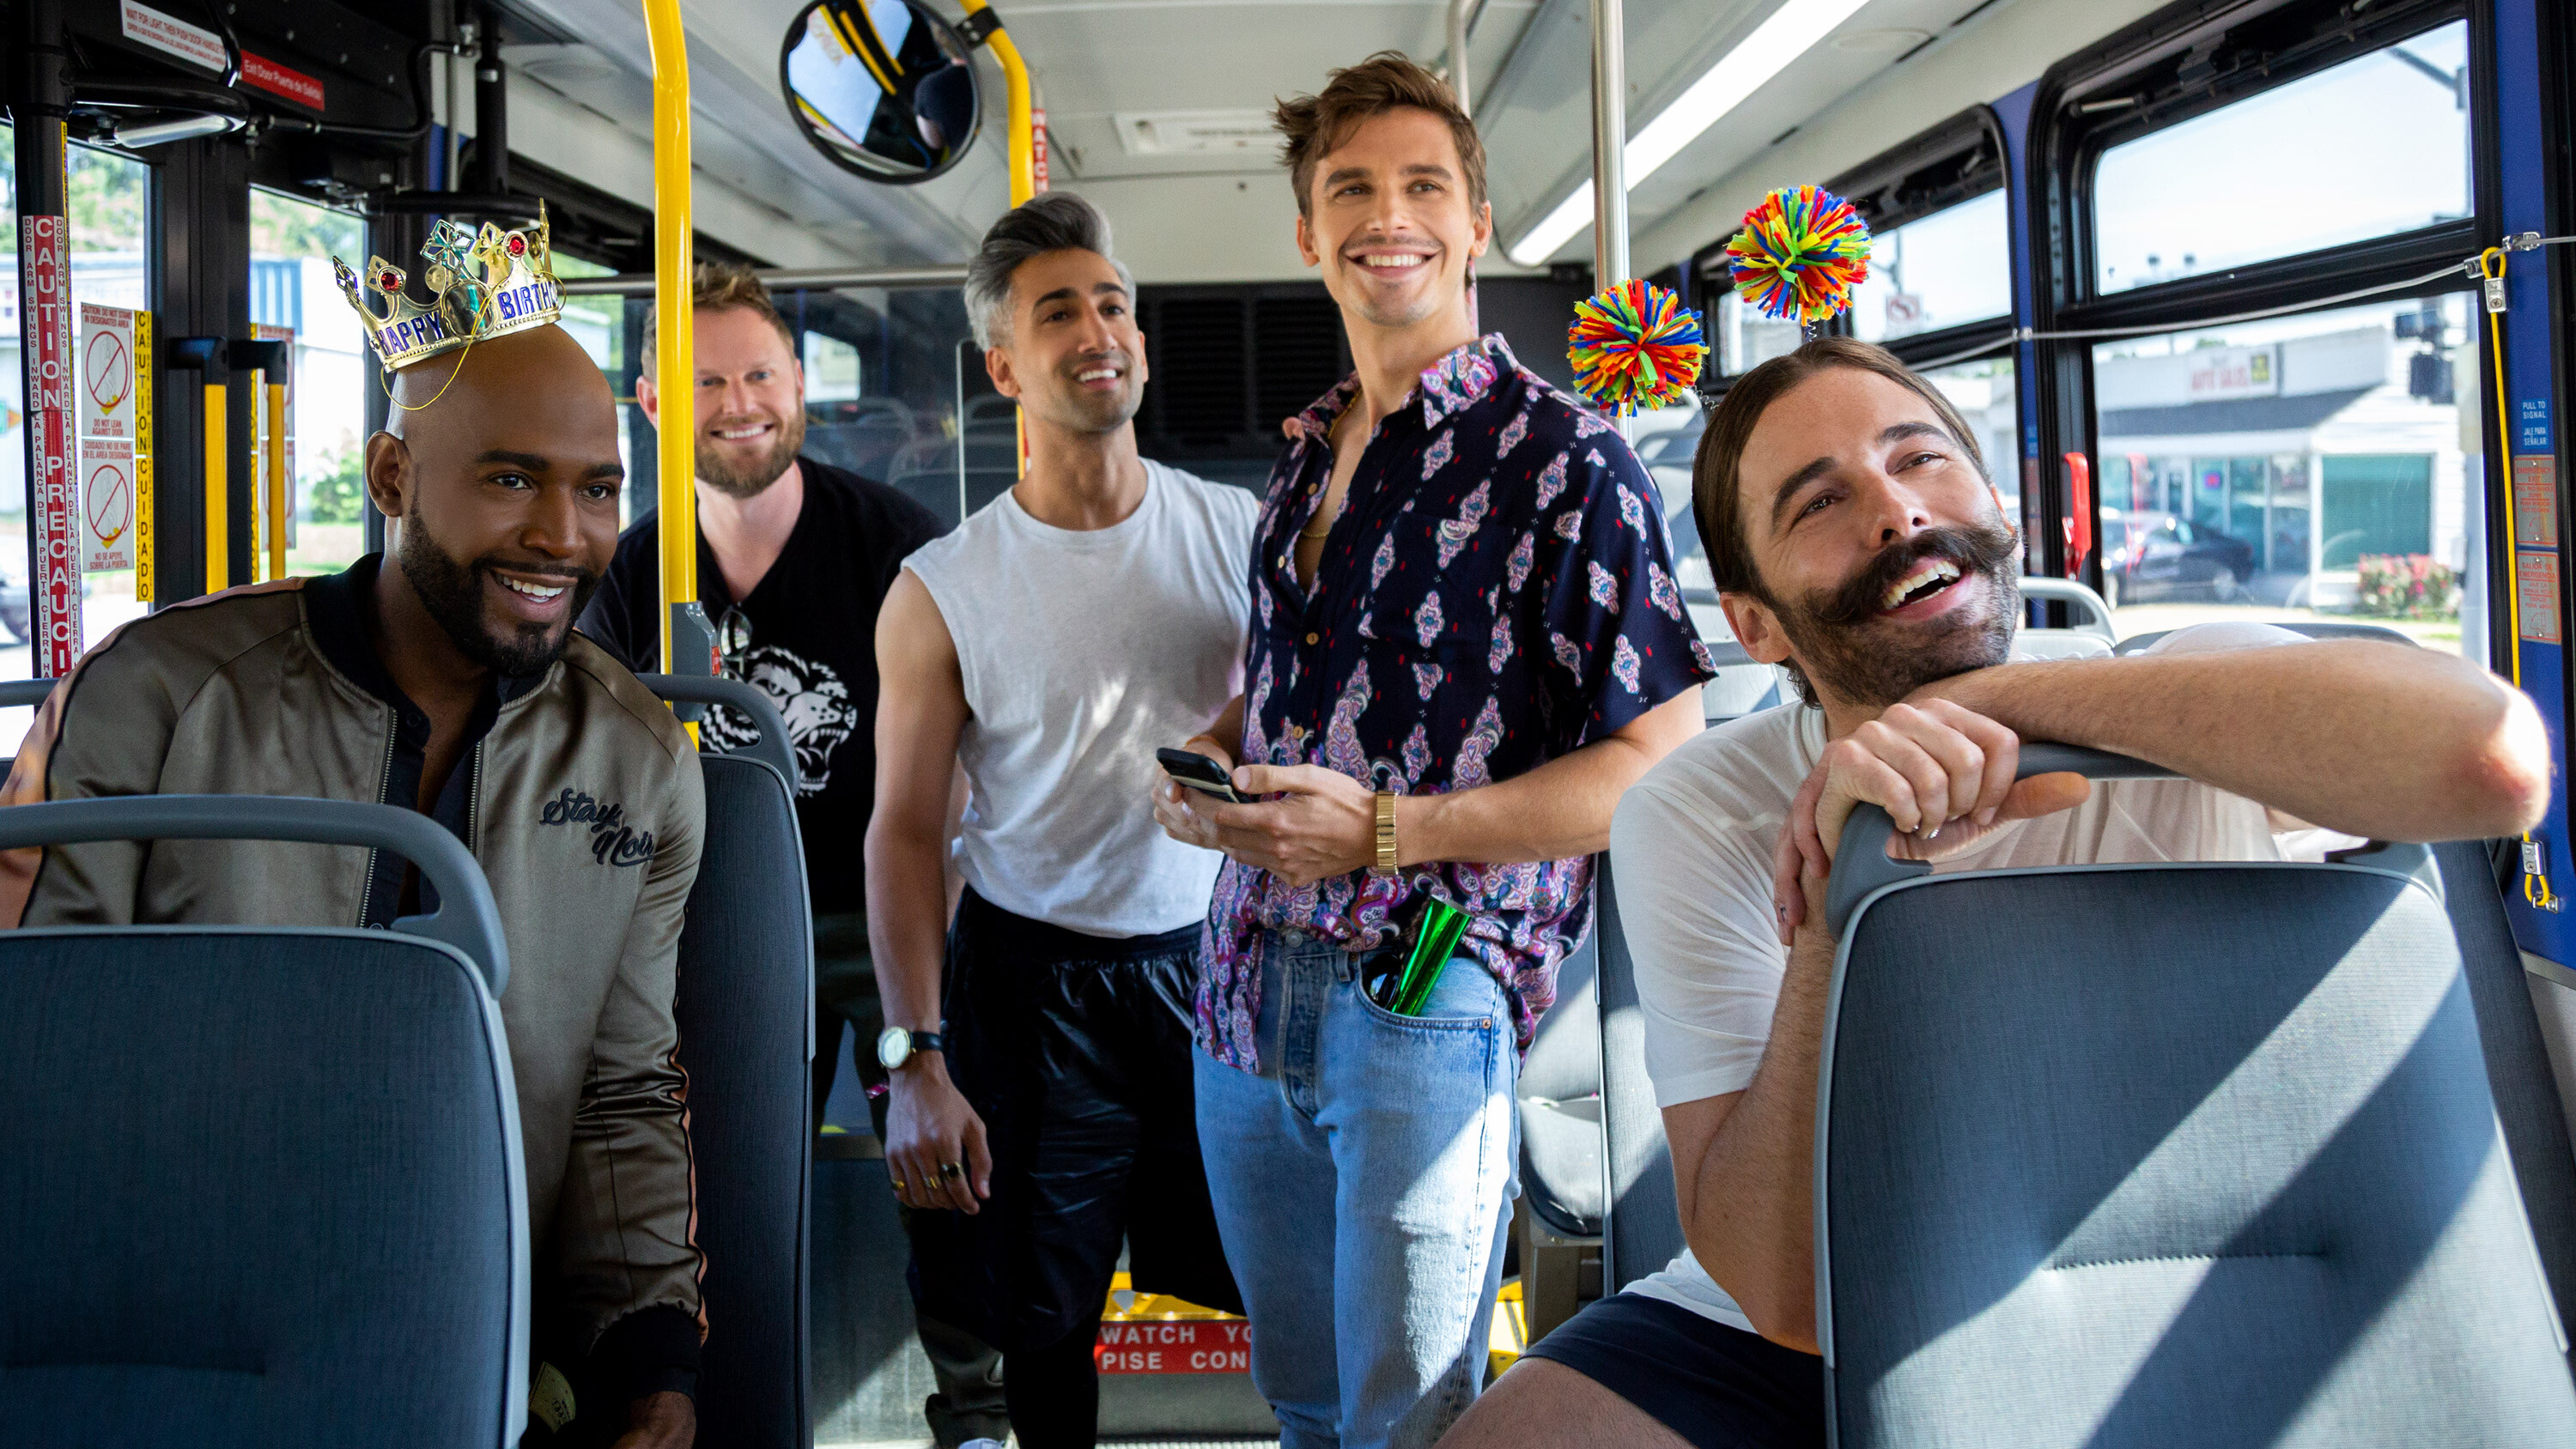 The 'Queer Eye' LEGO set with the Fab Five will brighten your day